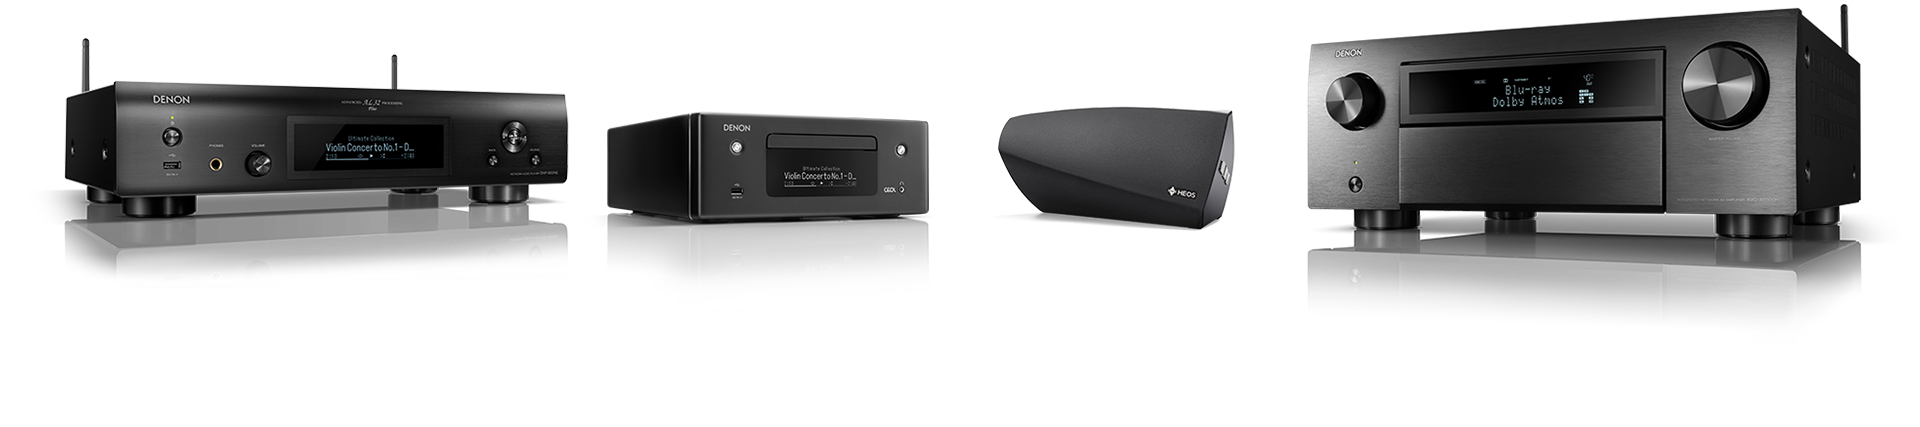 Use Google Assistant with these Denon and HEOS products: